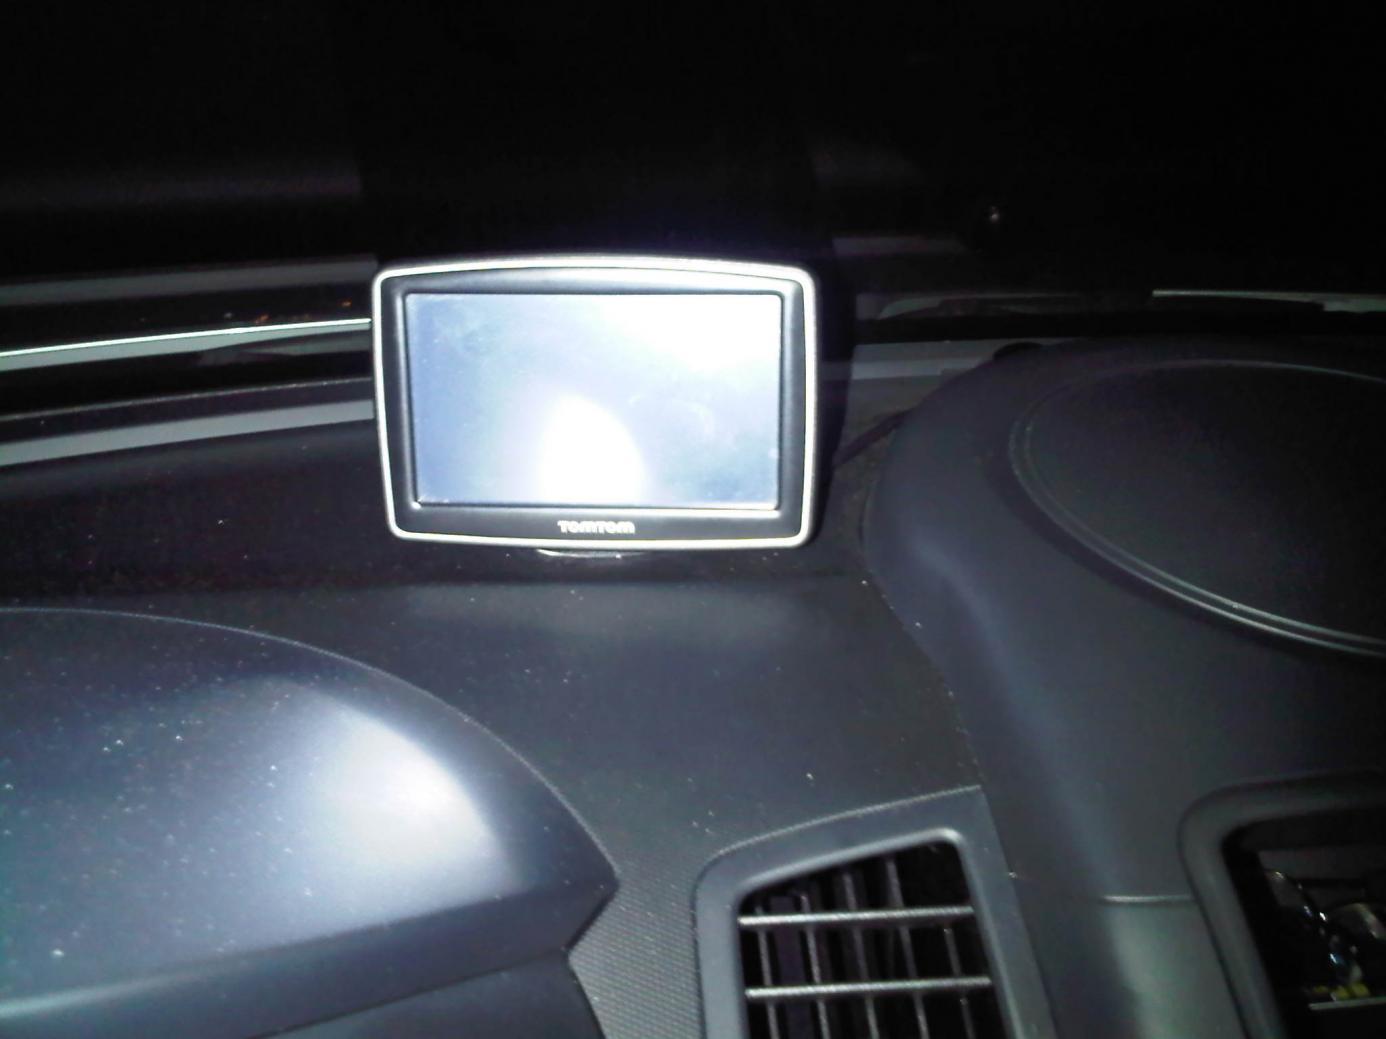 Dashboard Mount for GPS